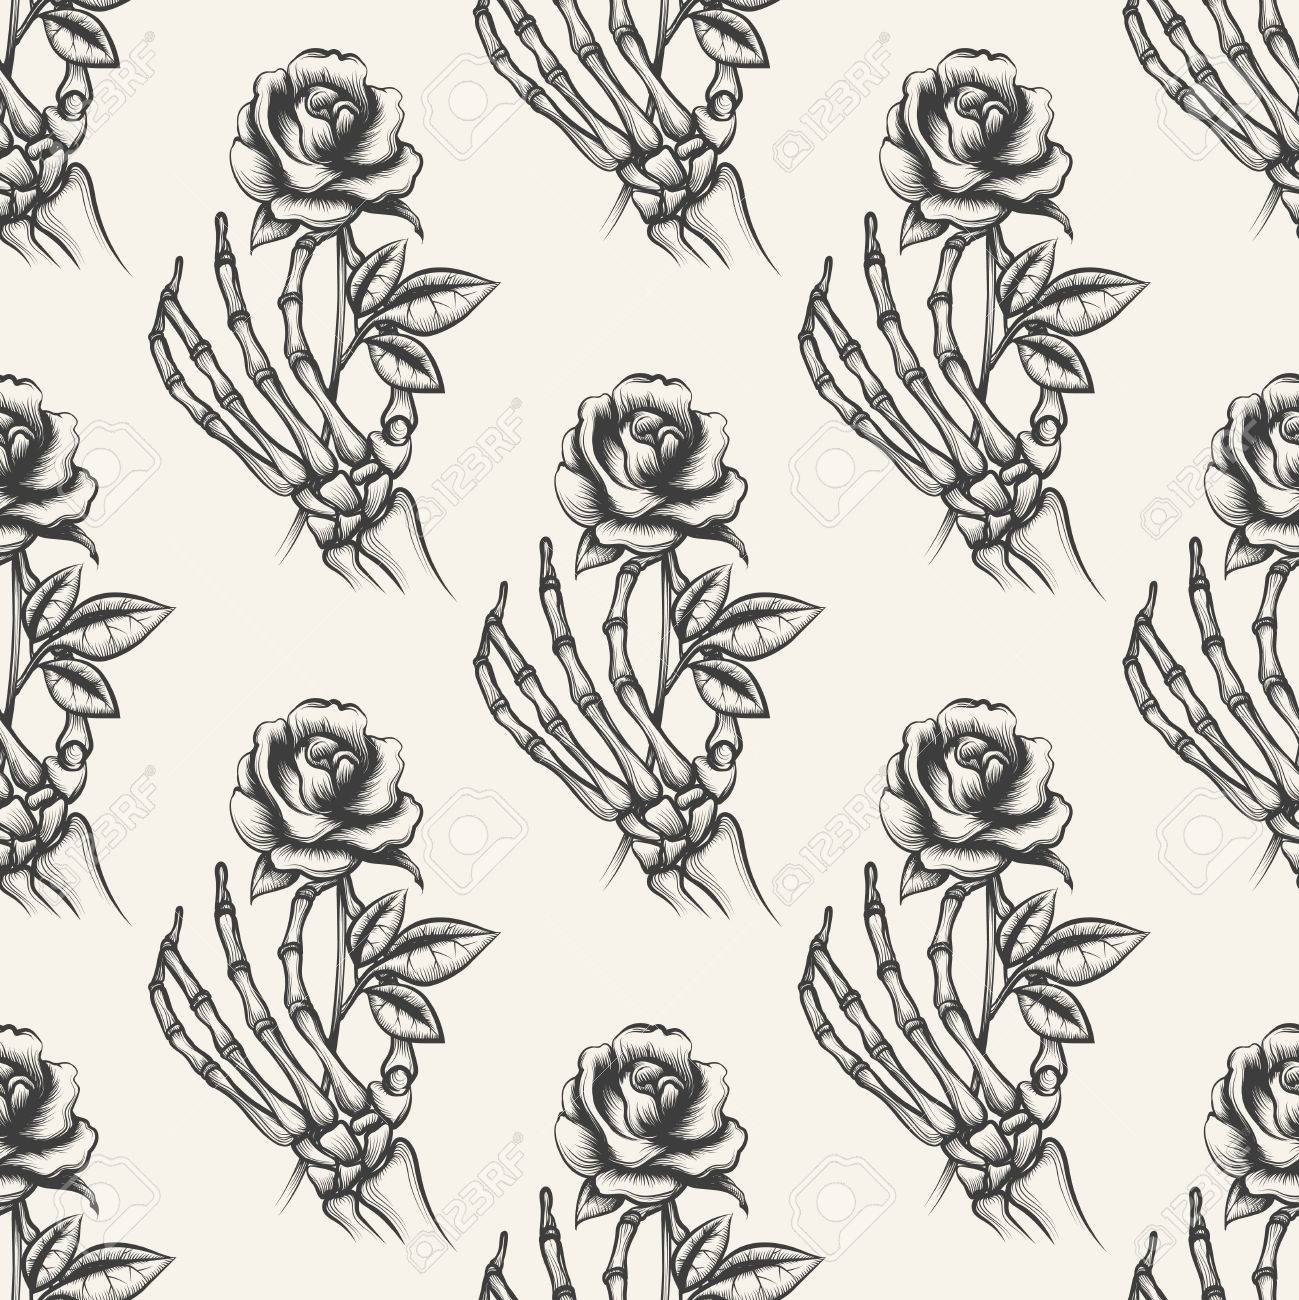 Skeleton Arm Sketch With Rose Vector Seamless Pattern Background